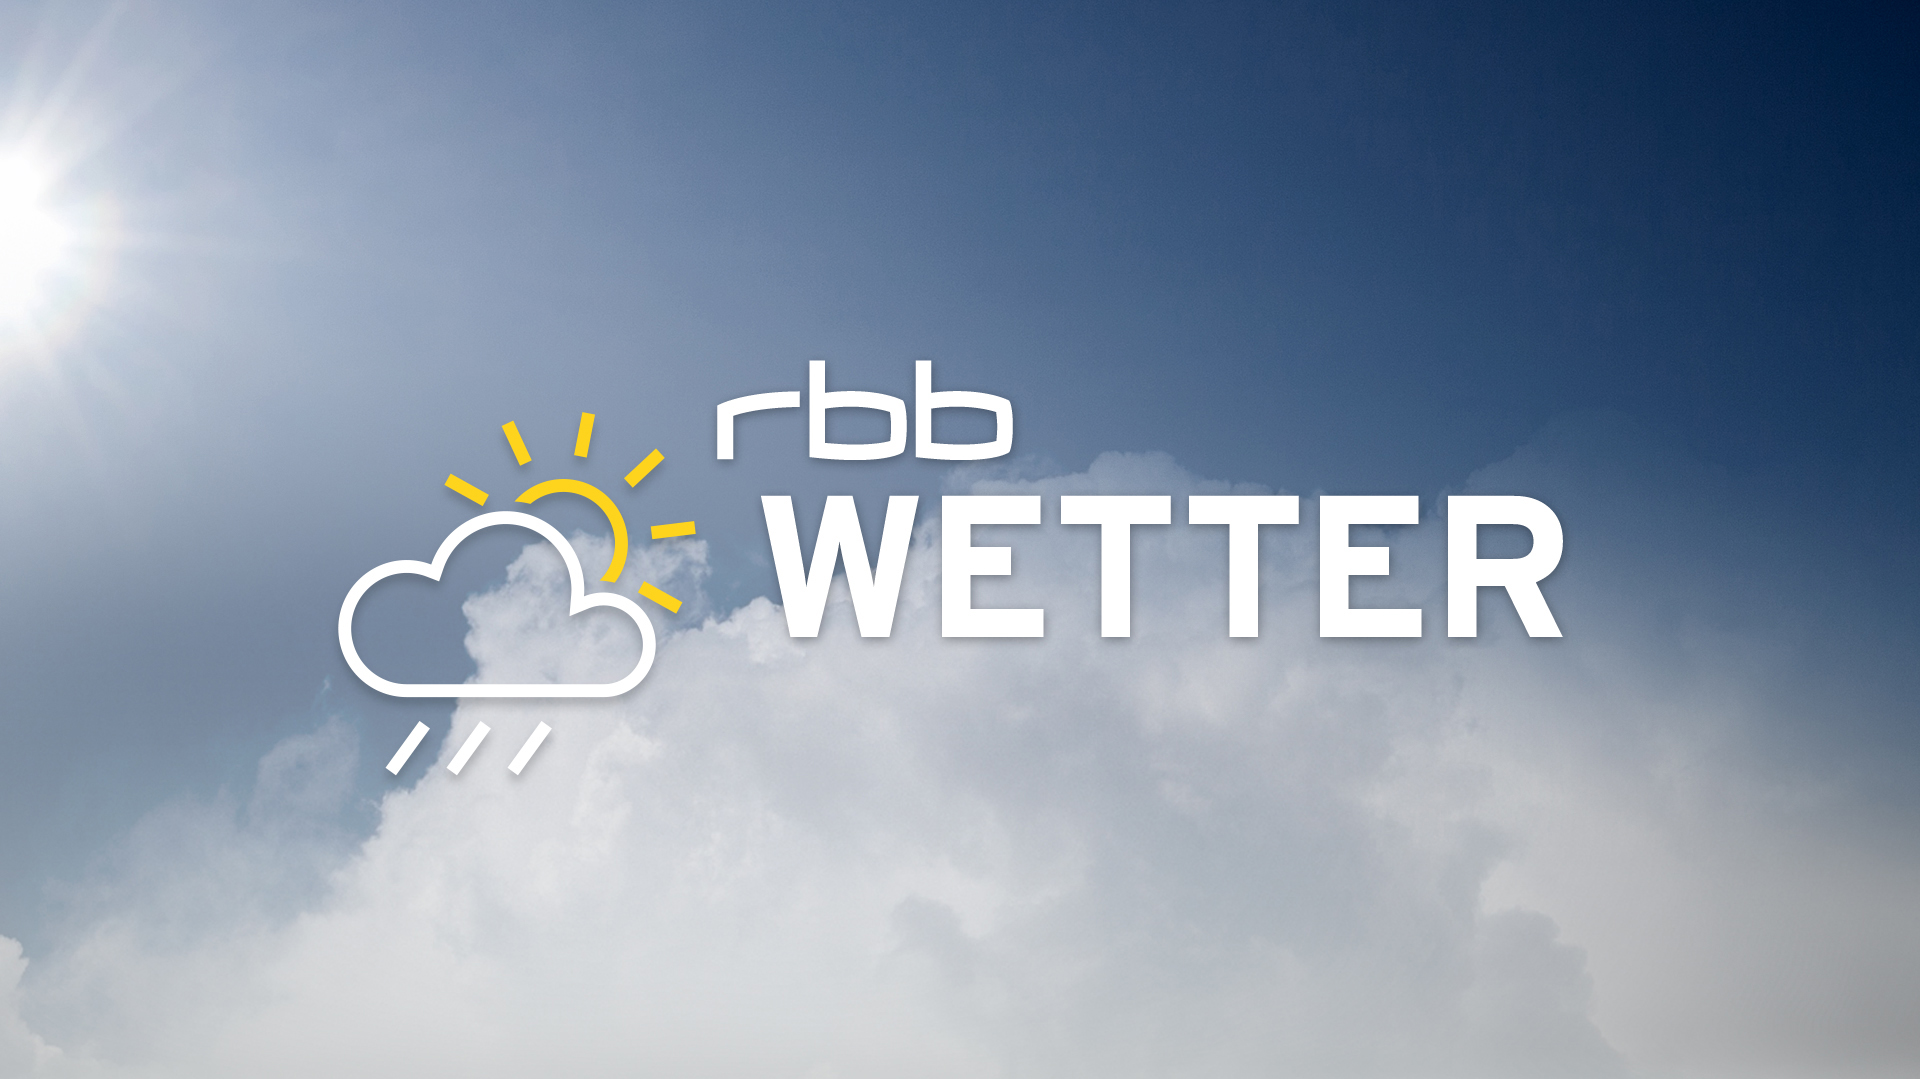 Wetter Rbb